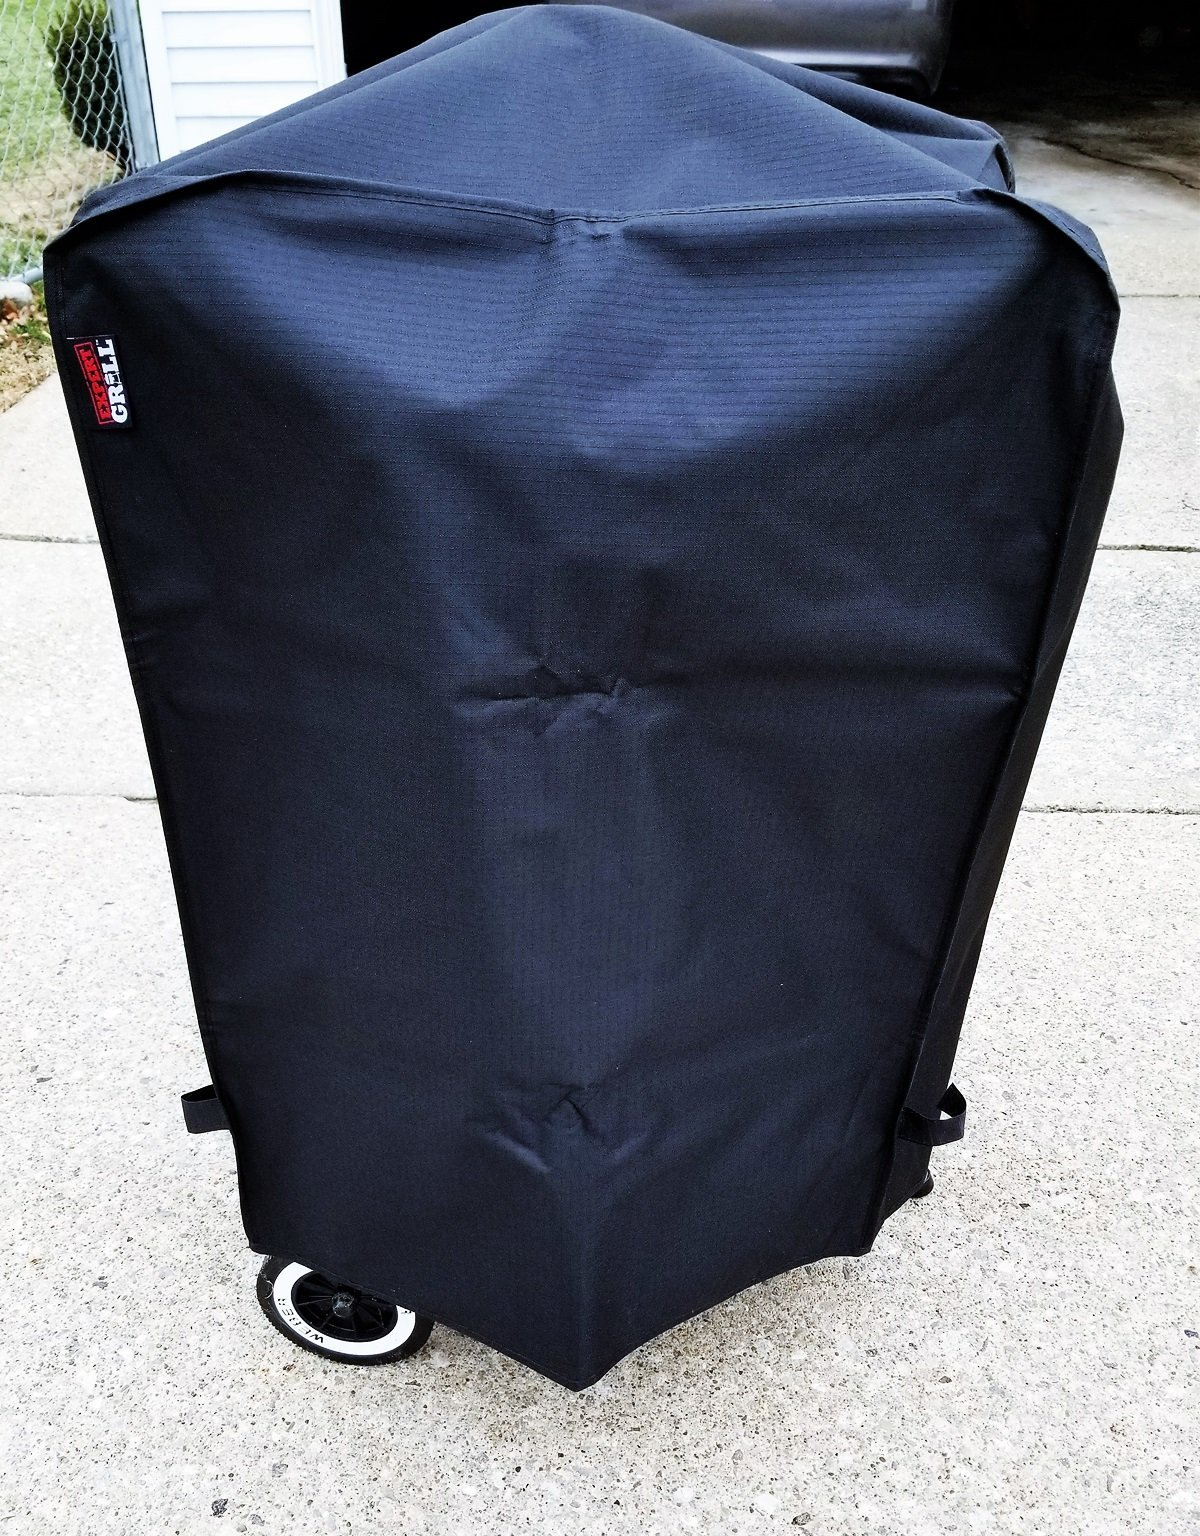 22 inch Kettle Grill or Square Upright Smoker Cover